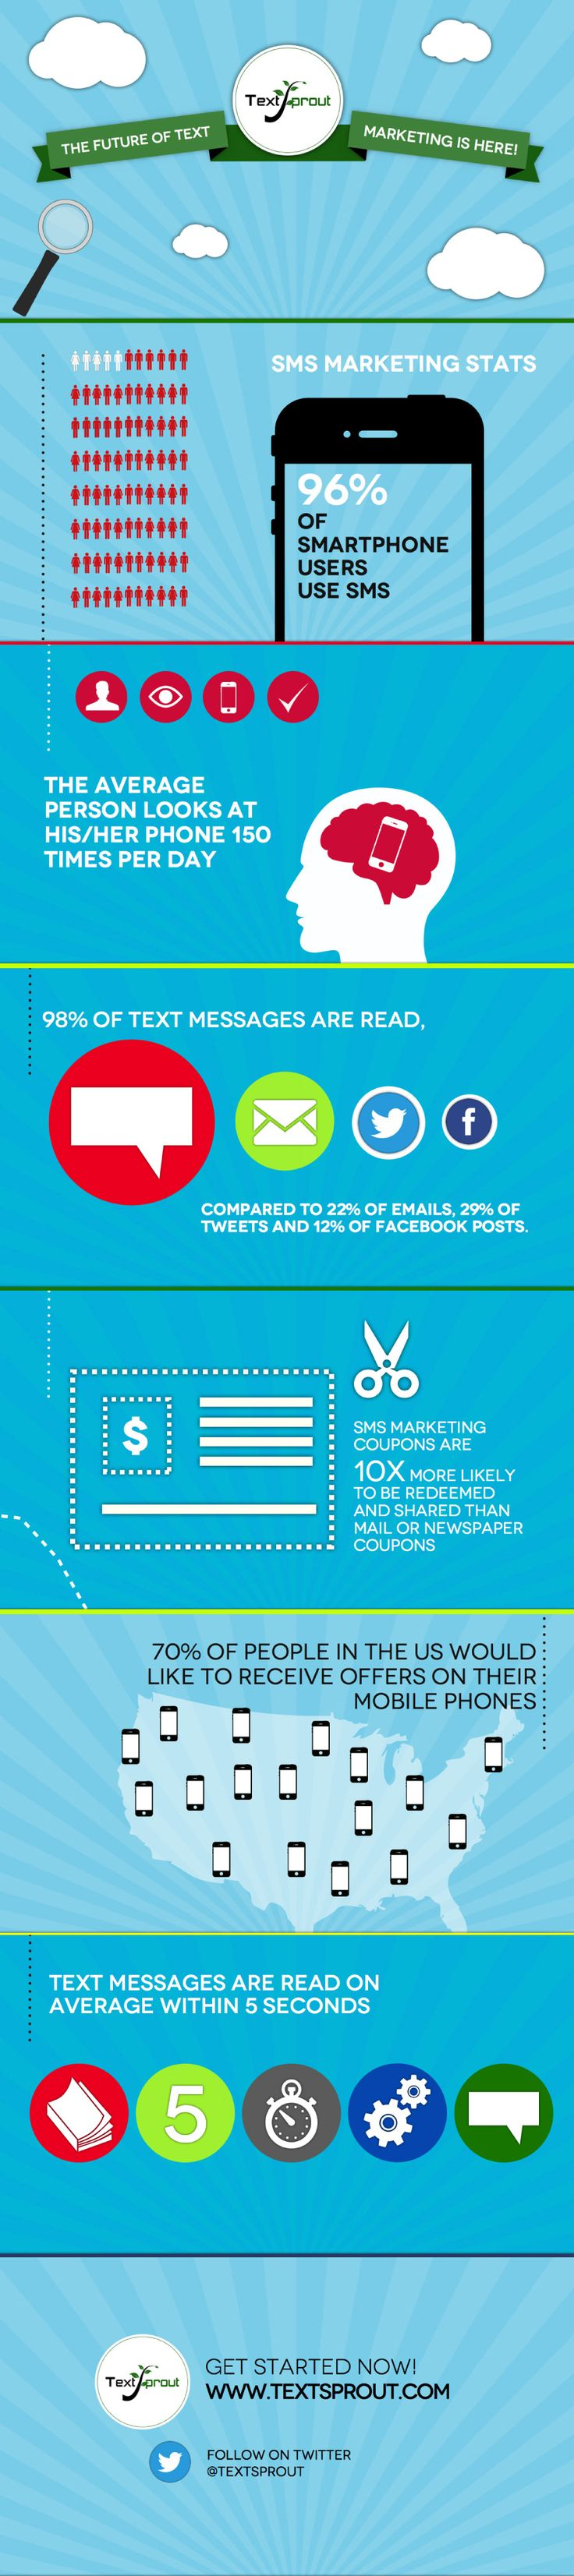 A bunch of amazing stats about text messaging (Infographic) - interesting but surely I'm not the only one to get annoyed with unsolicited texts?